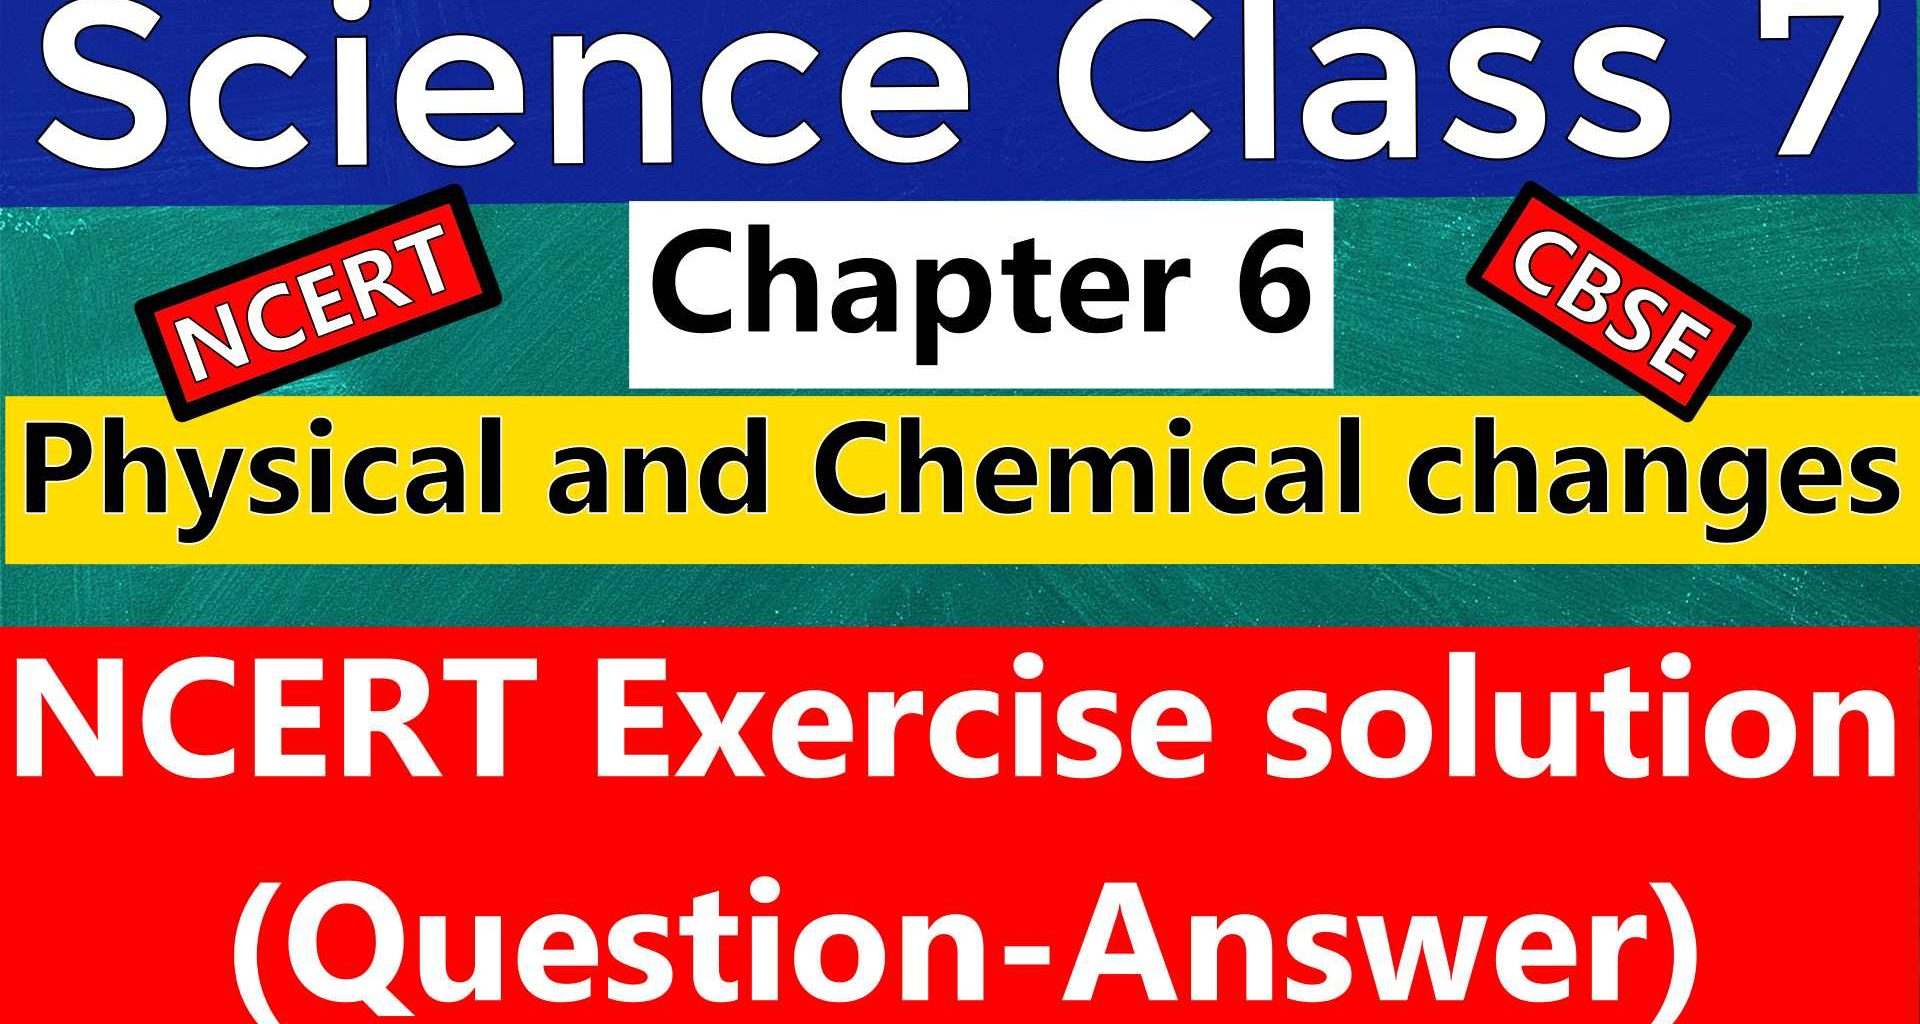 CBSE Science Class 7- Chapter 6- Physical and Chemical changes- NCERT Exercise Solution (Question-Answer) is provided below. Total 12 Questions are in this NCERT Chapter Exercise, all are solved here.